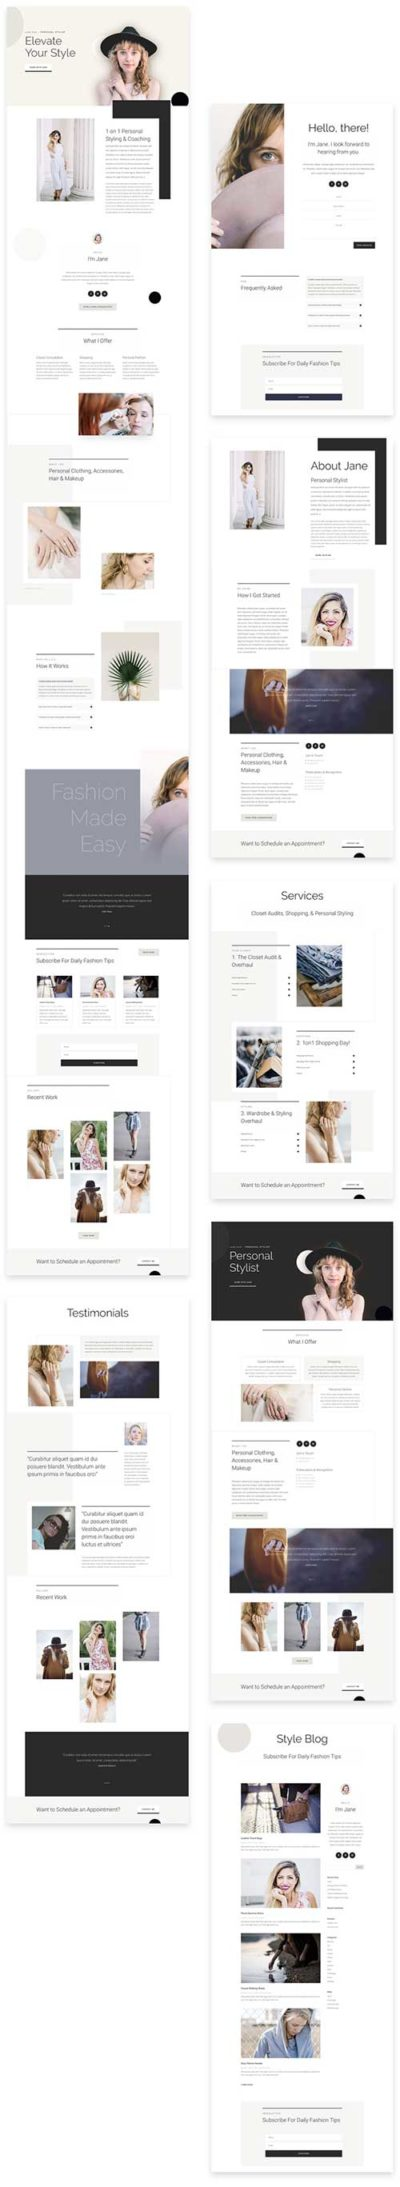 personal-stylist-template